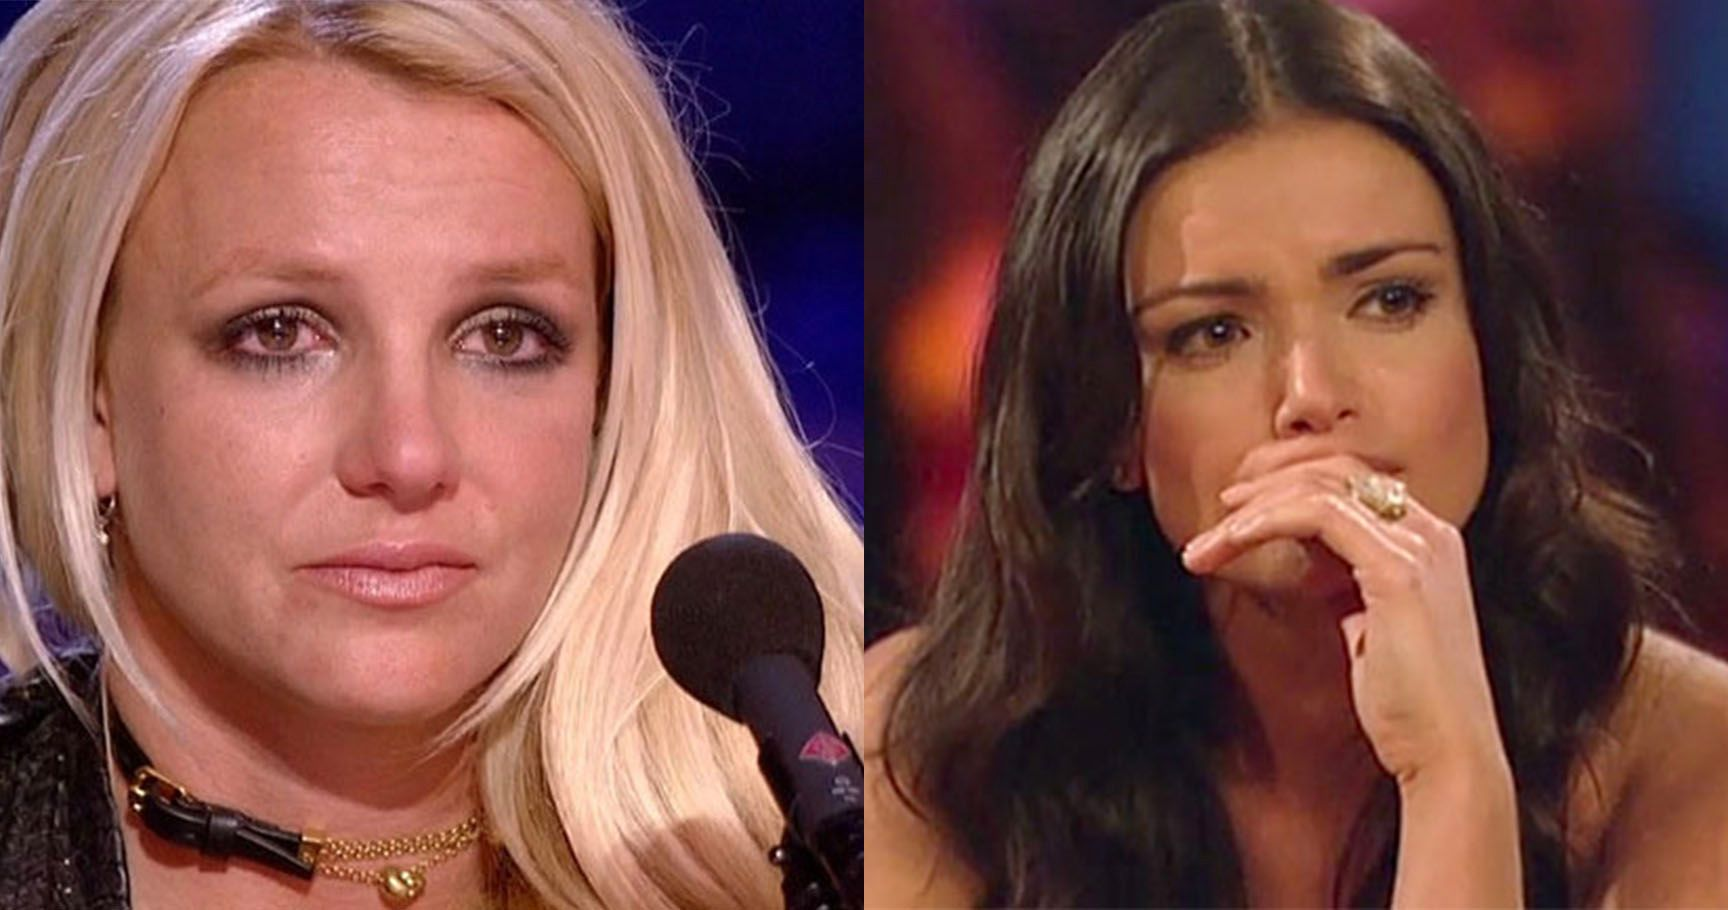 15 Times Reality TV Completely Destroyed Someone's Life